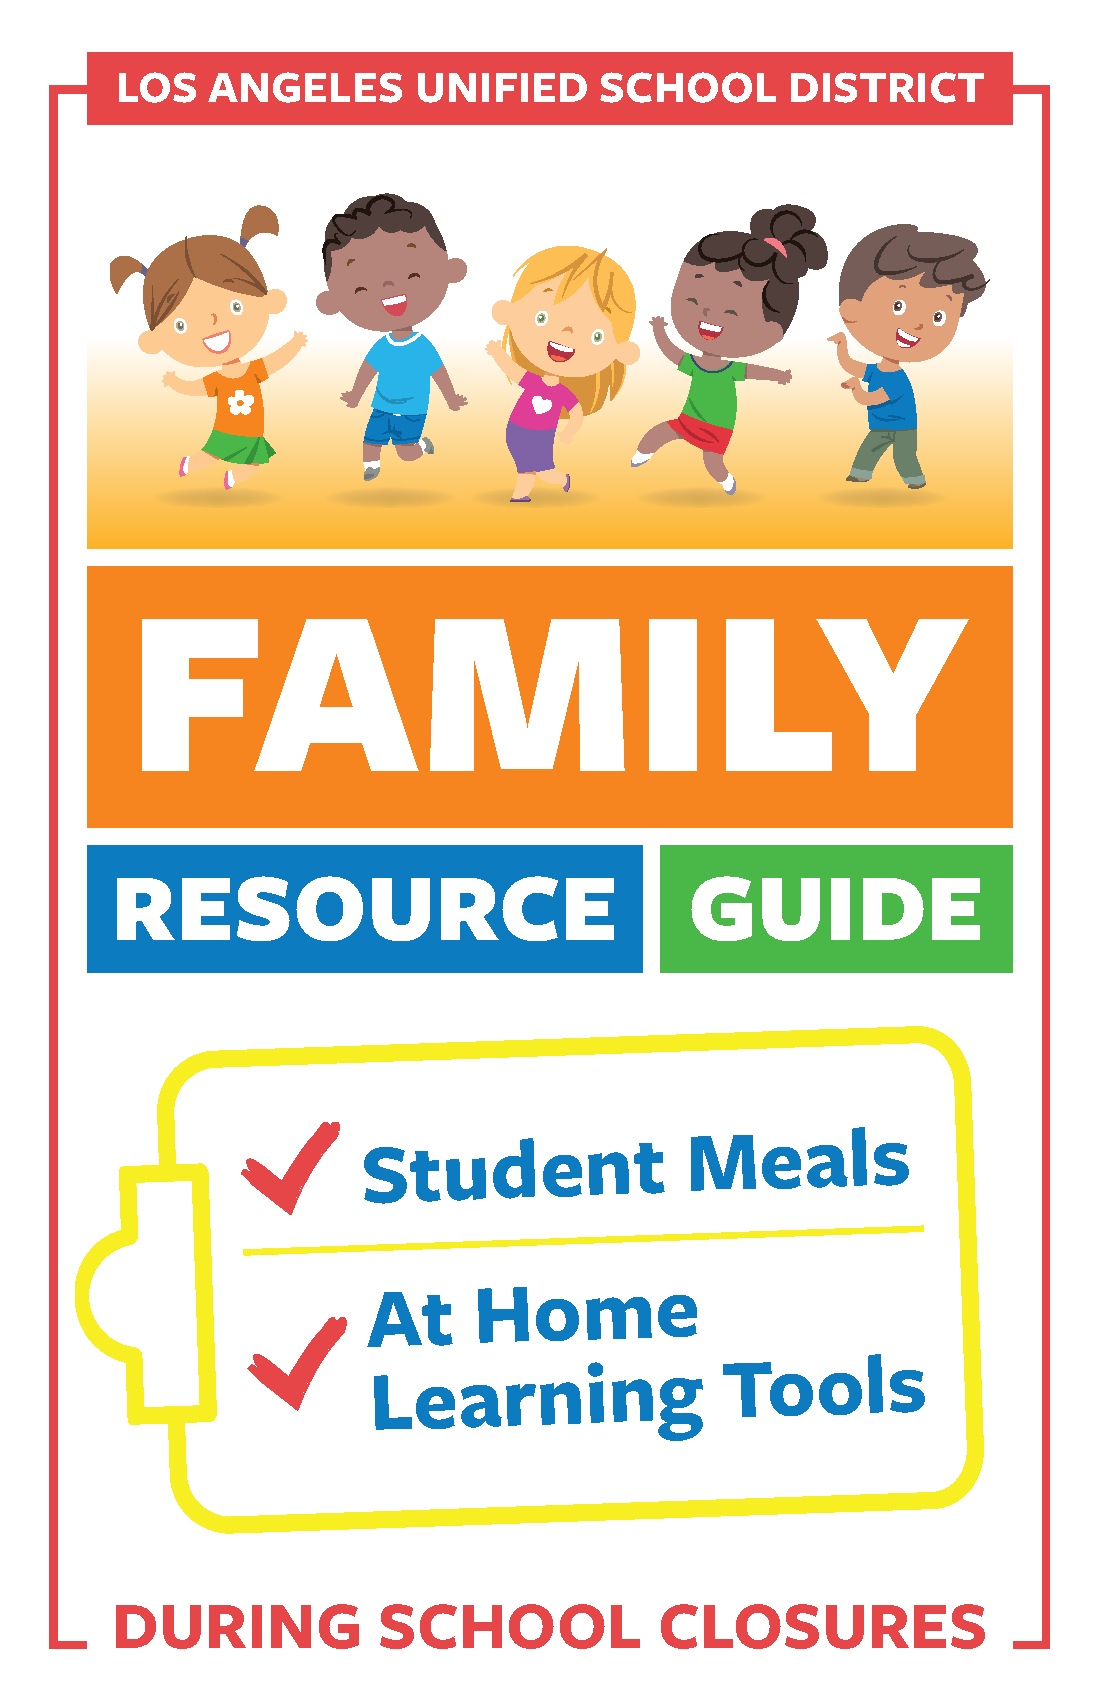 Click here for the Family Resource Guide